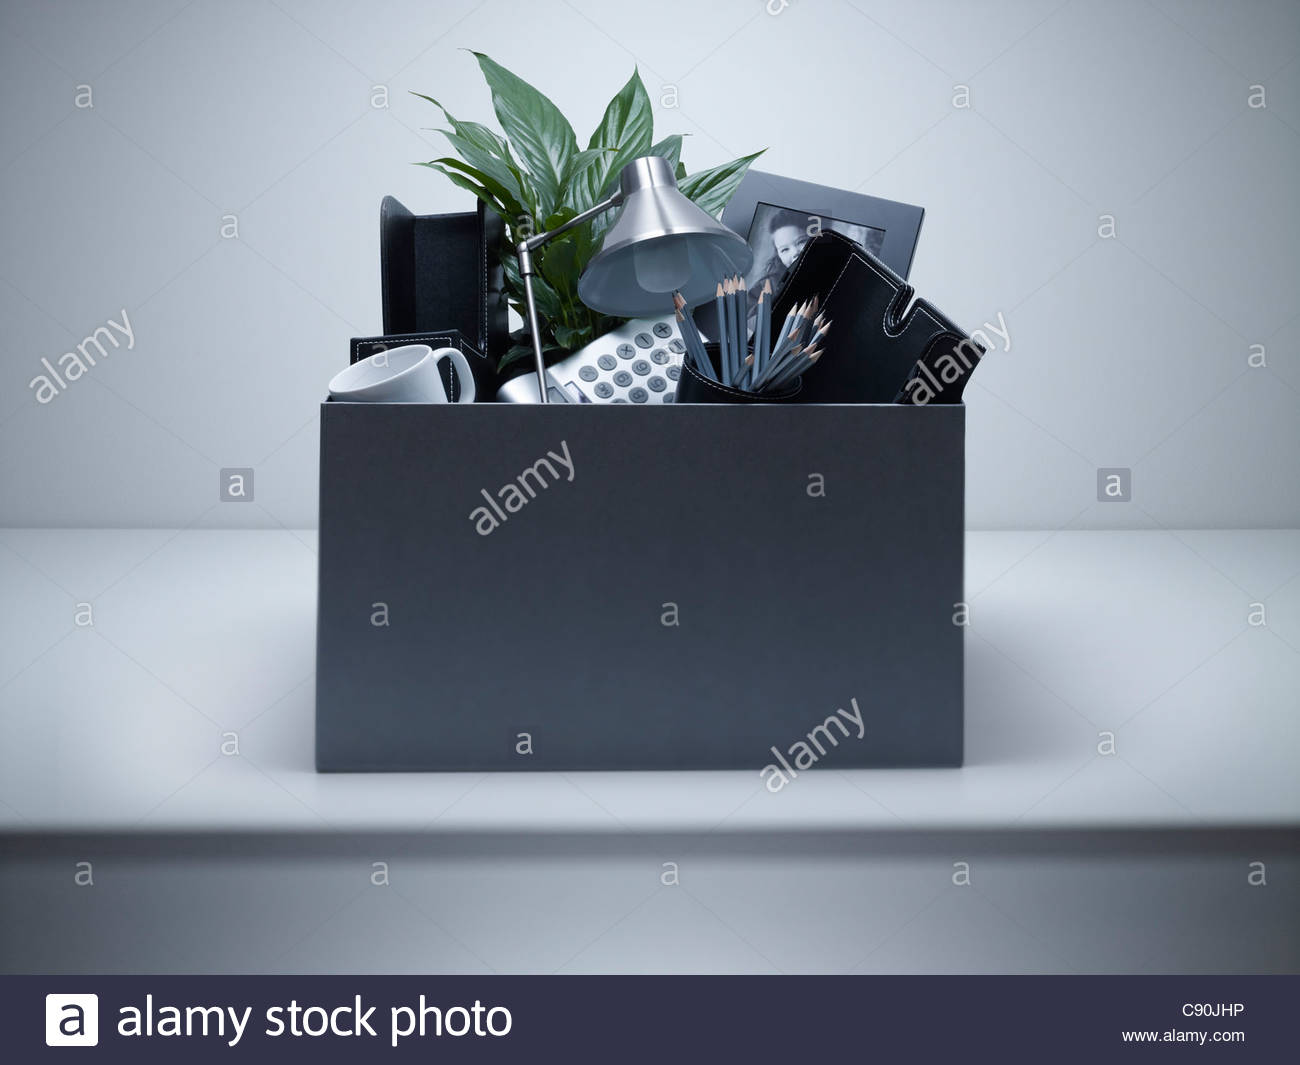 Box packed with desk objects - Stock Image